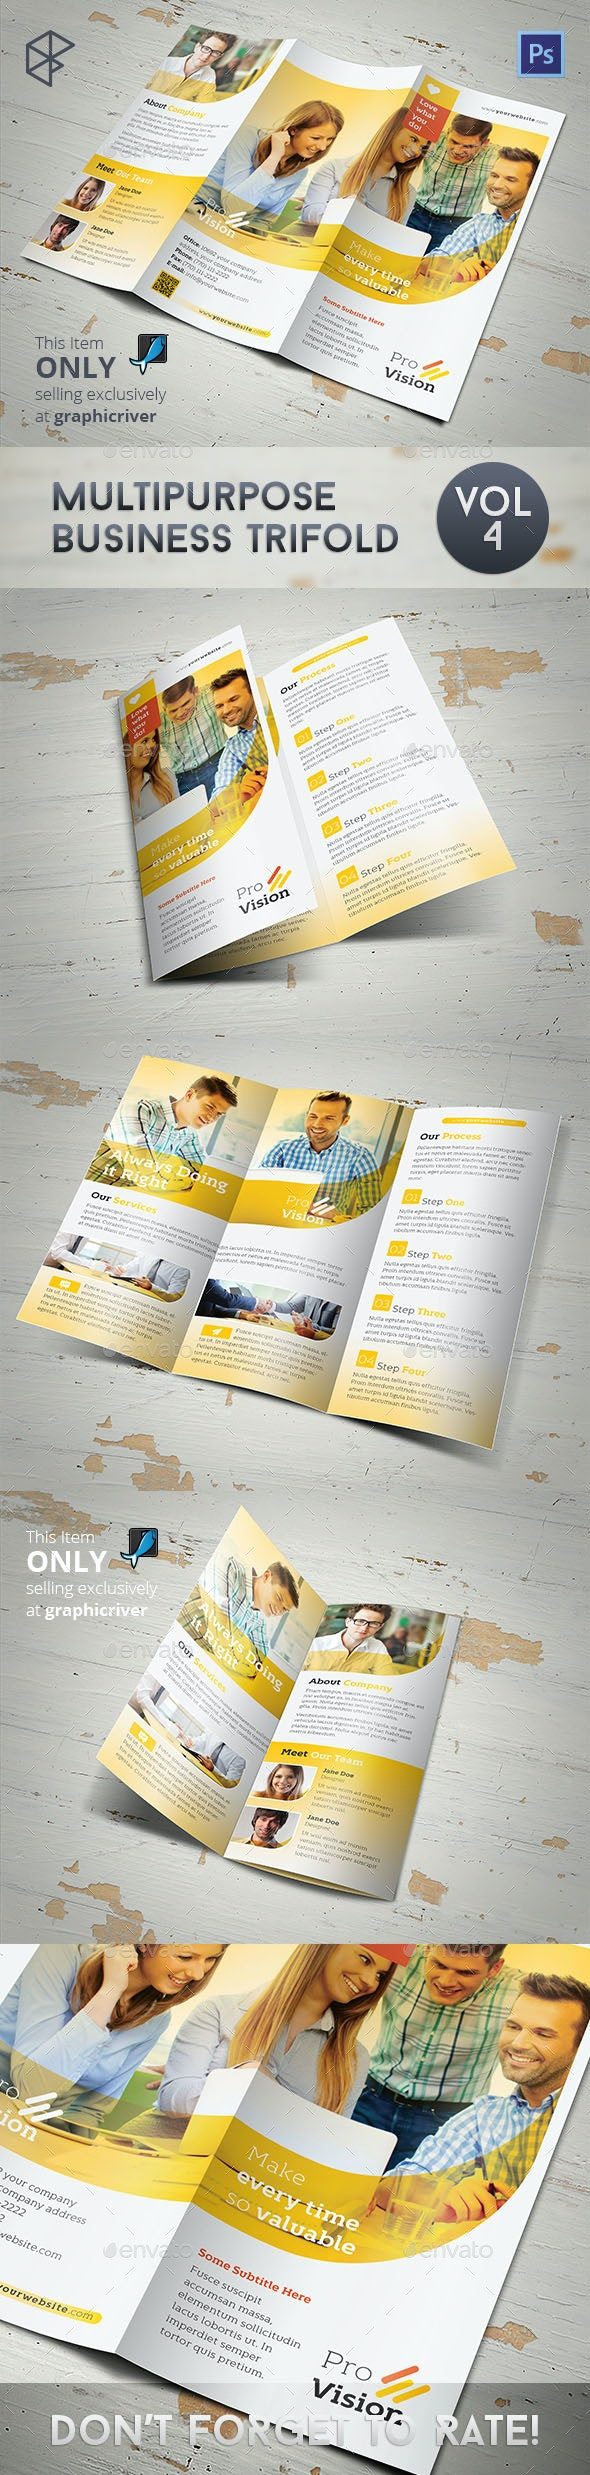 Multipurpose Business Trifold Vol 4 - Corporate Brochures